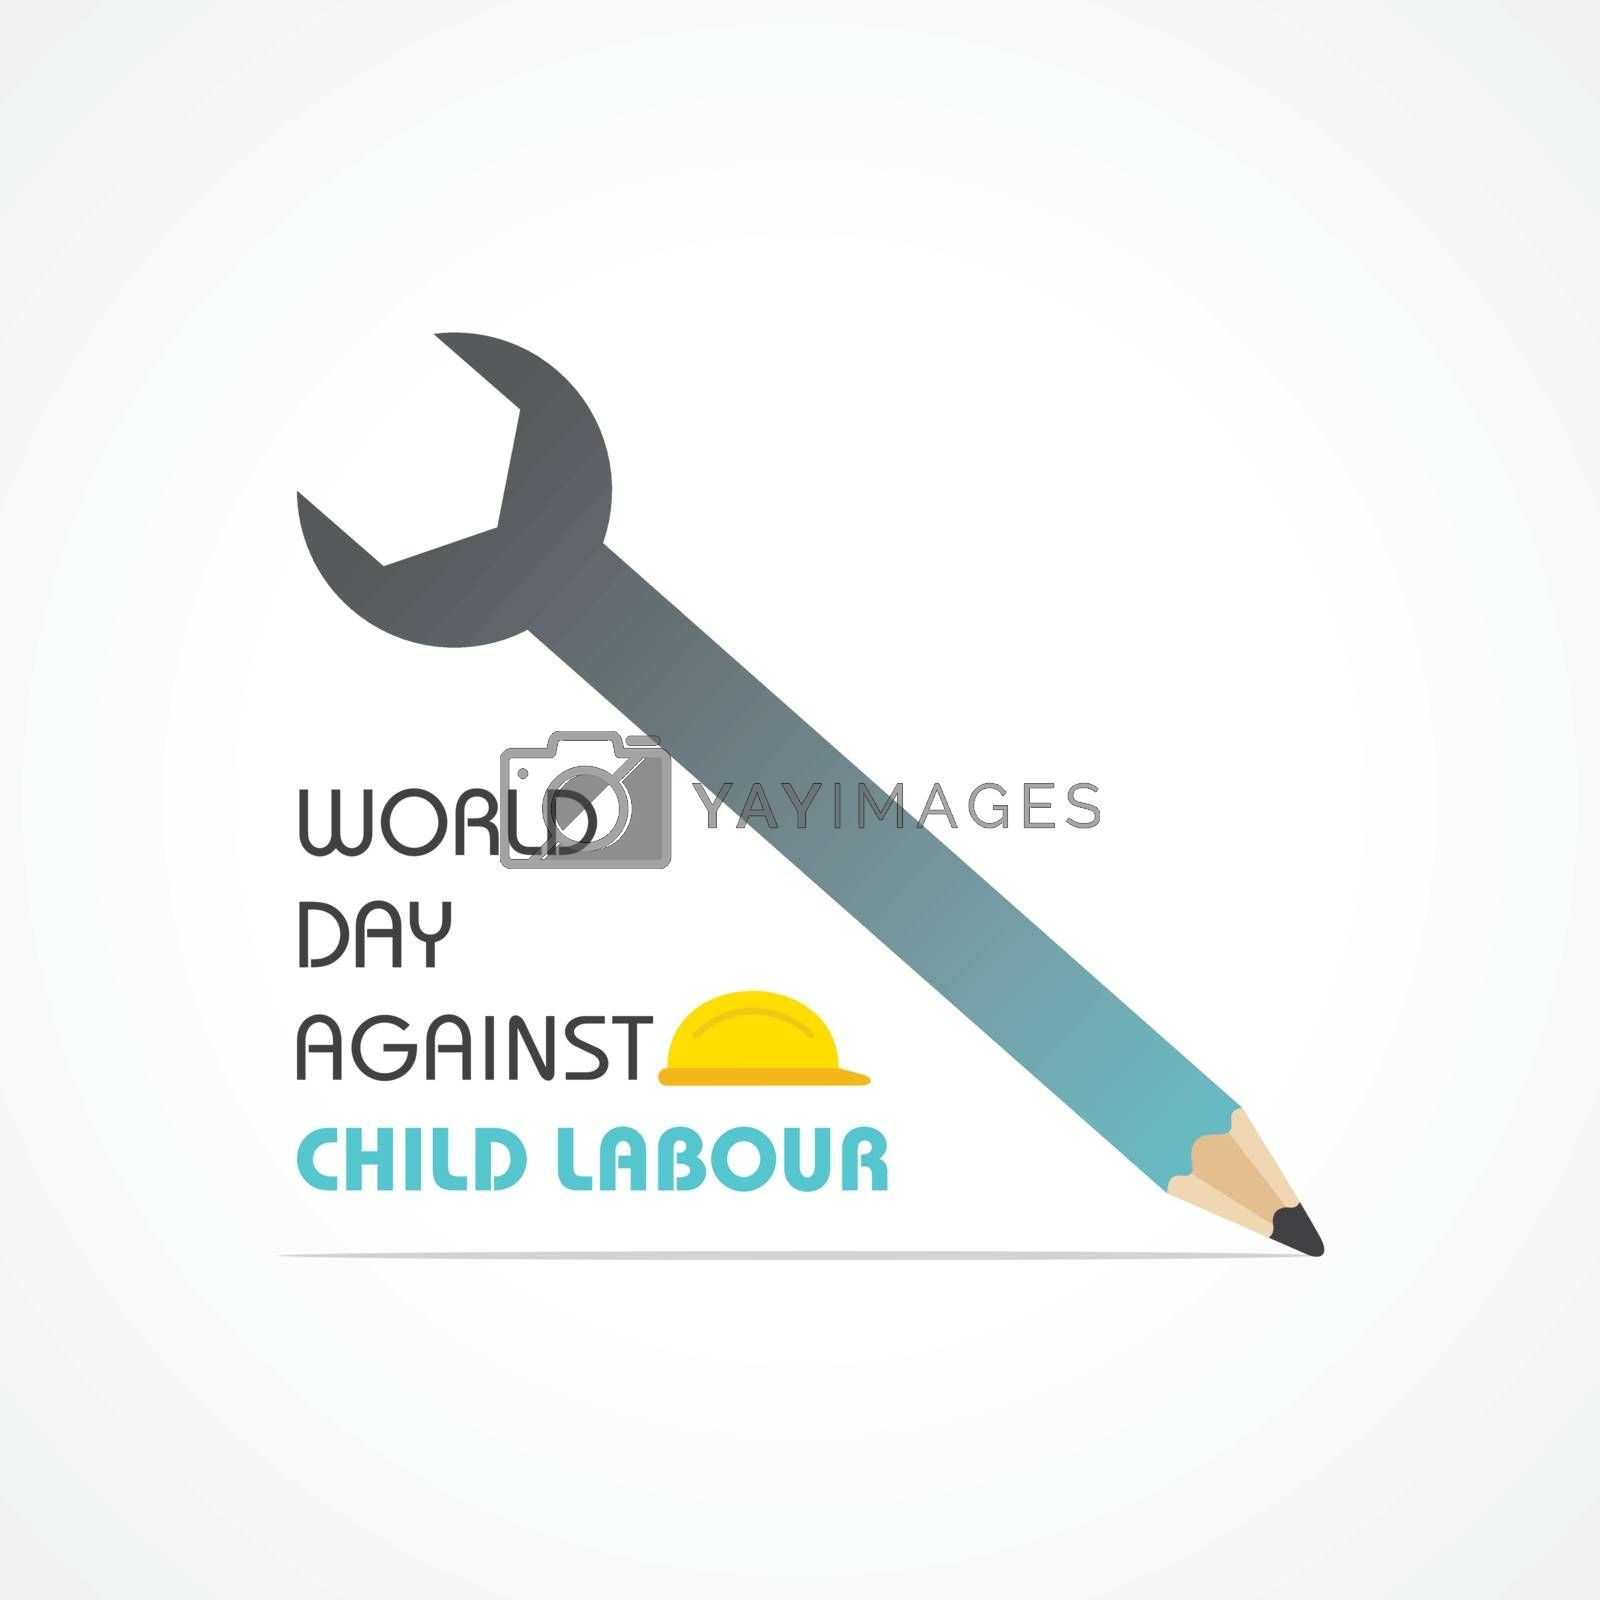 World Day Against Child Labour which is held on 12 June by graphicsdunia4you